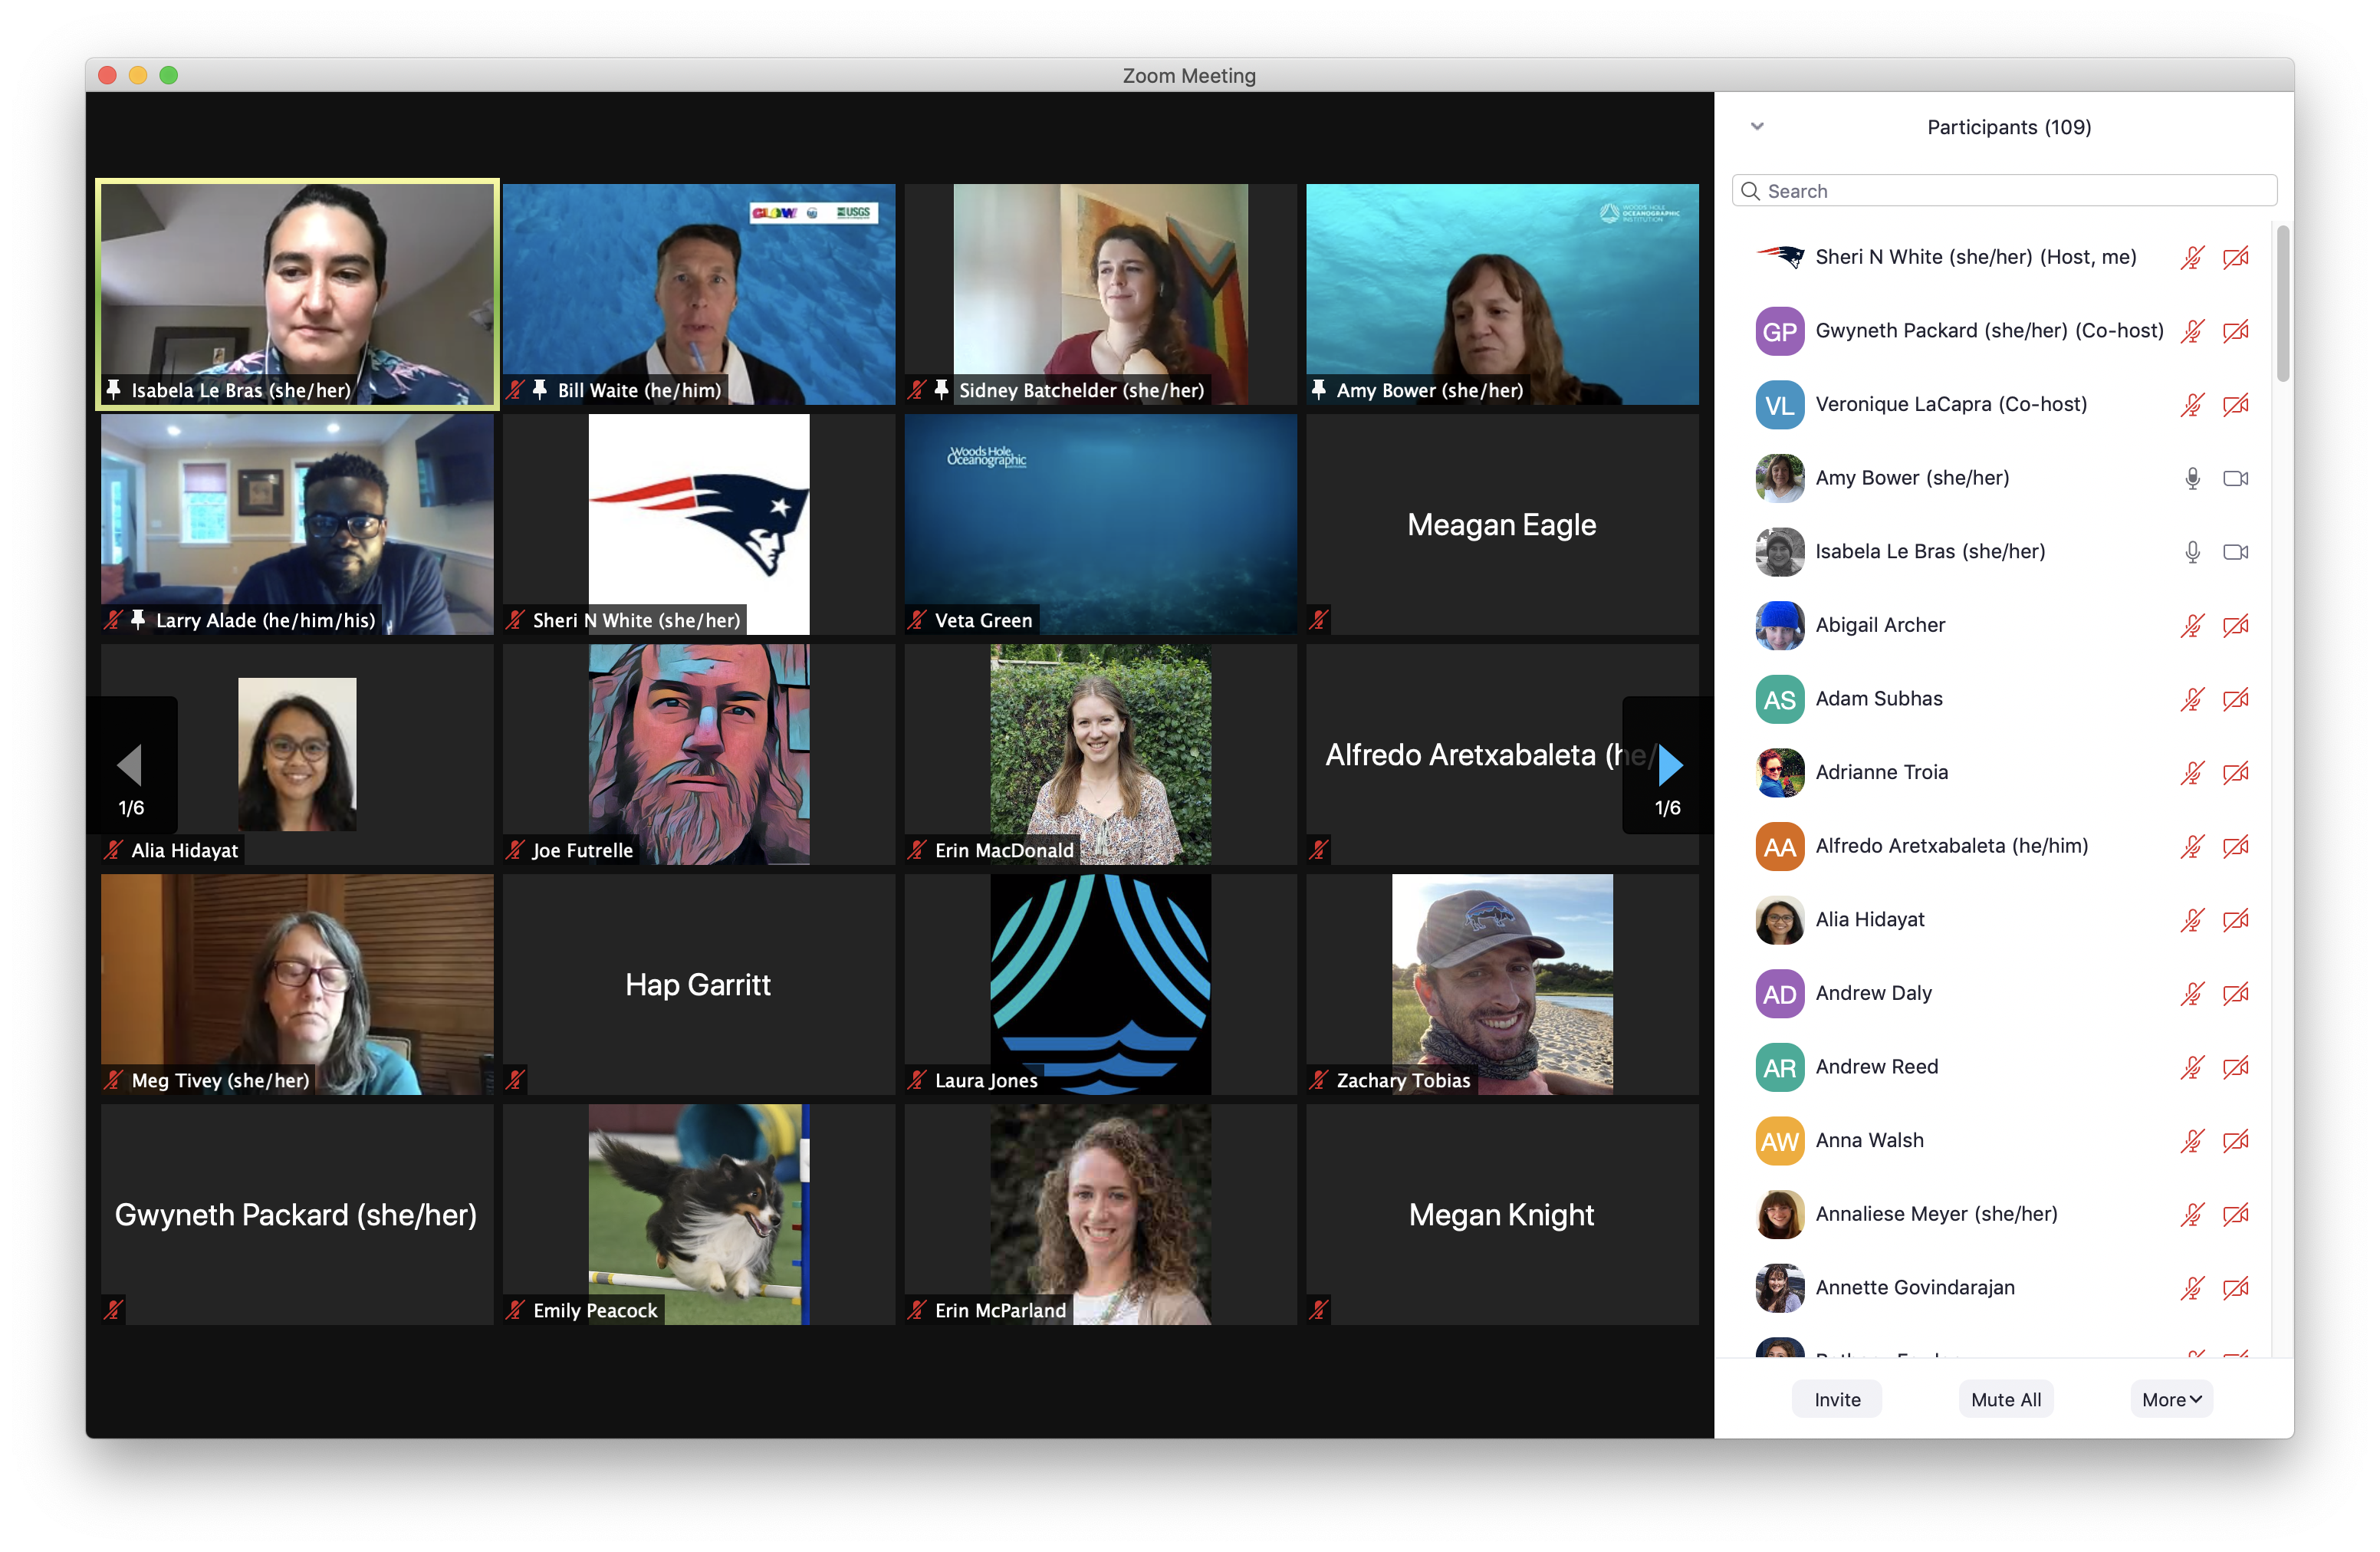 Screen-shot of end of zoom call, 109 participants still attending..